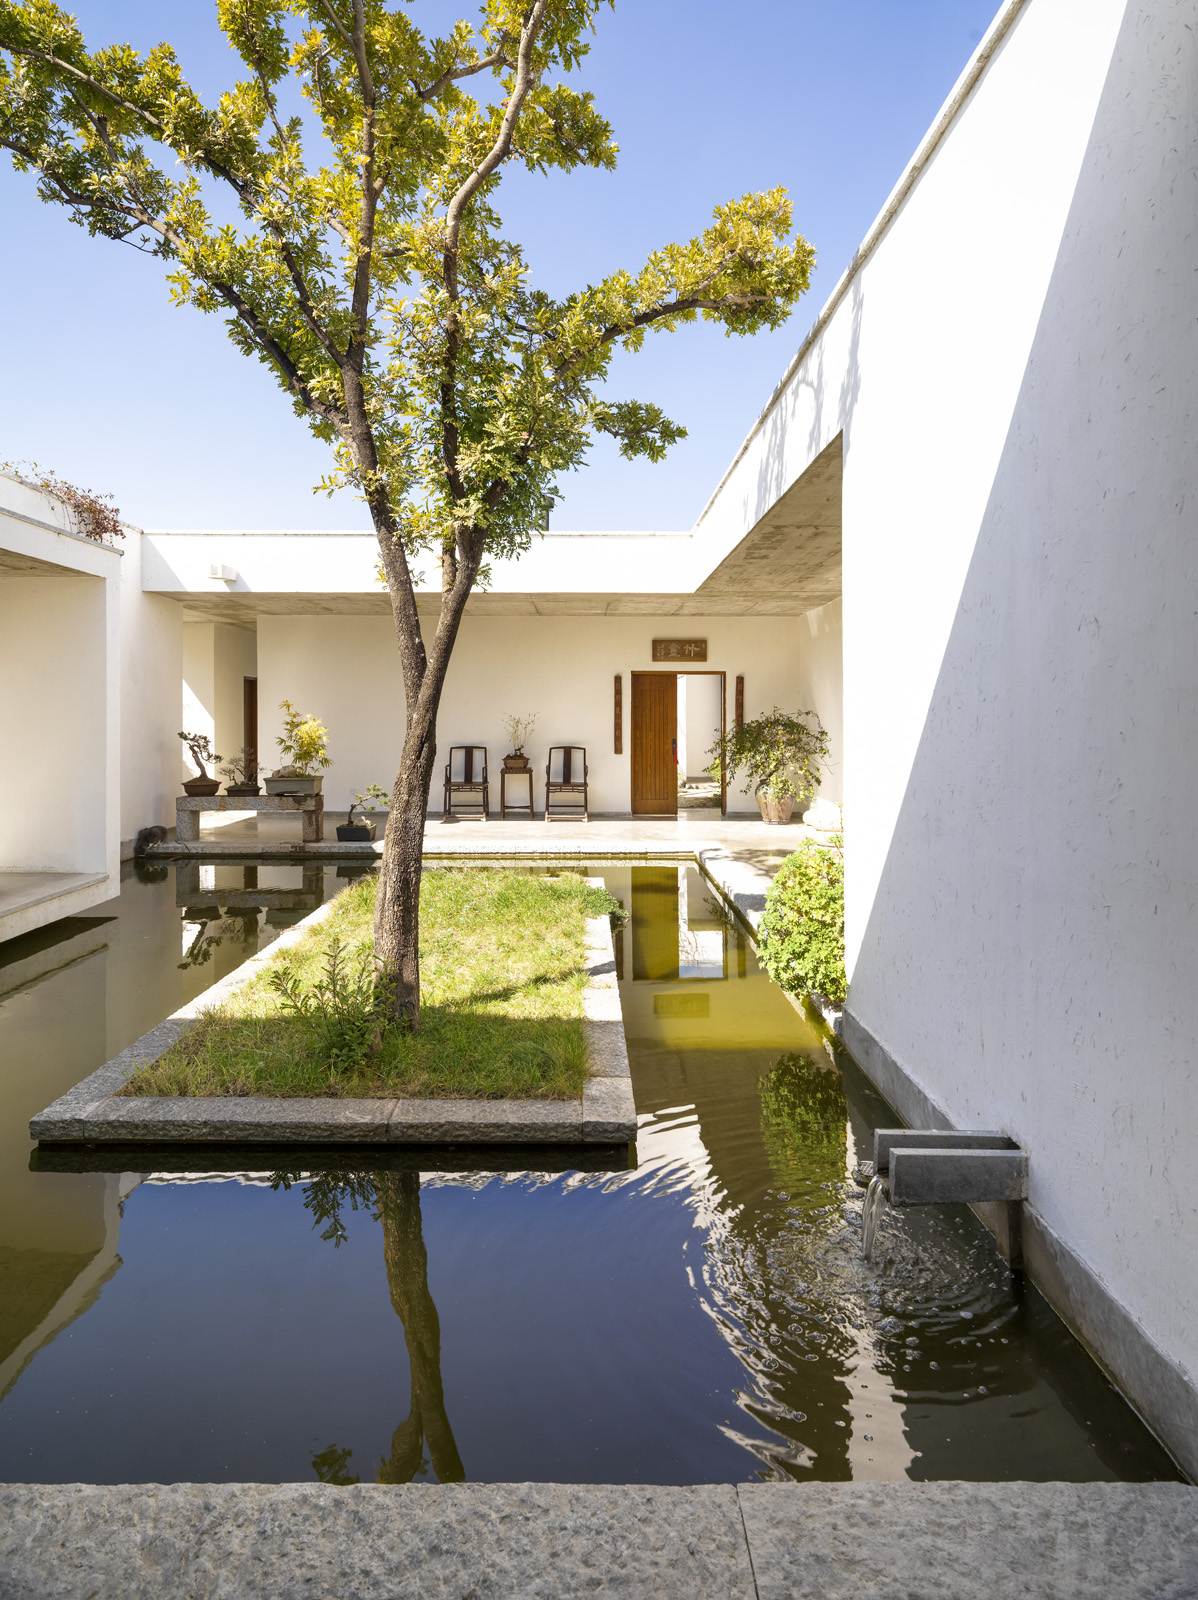 竹庵,大理 ZHU'AN RESIDENCE, DALI  -READ MORE-